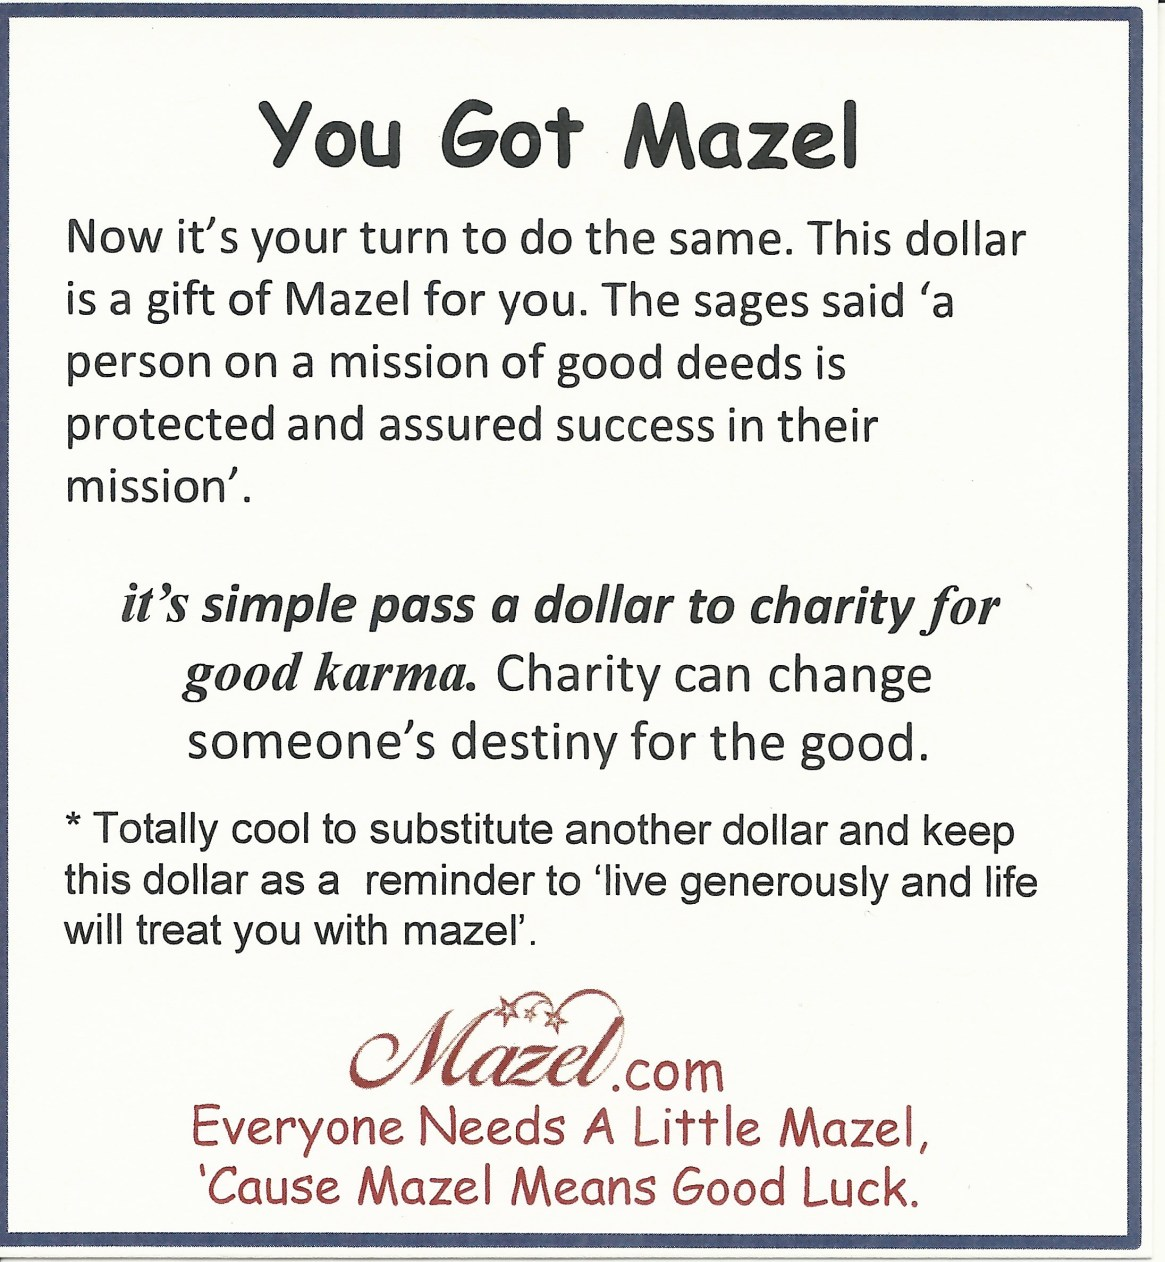 Cause Mazel Means Good Luck Everyone Needs A Little Mazel